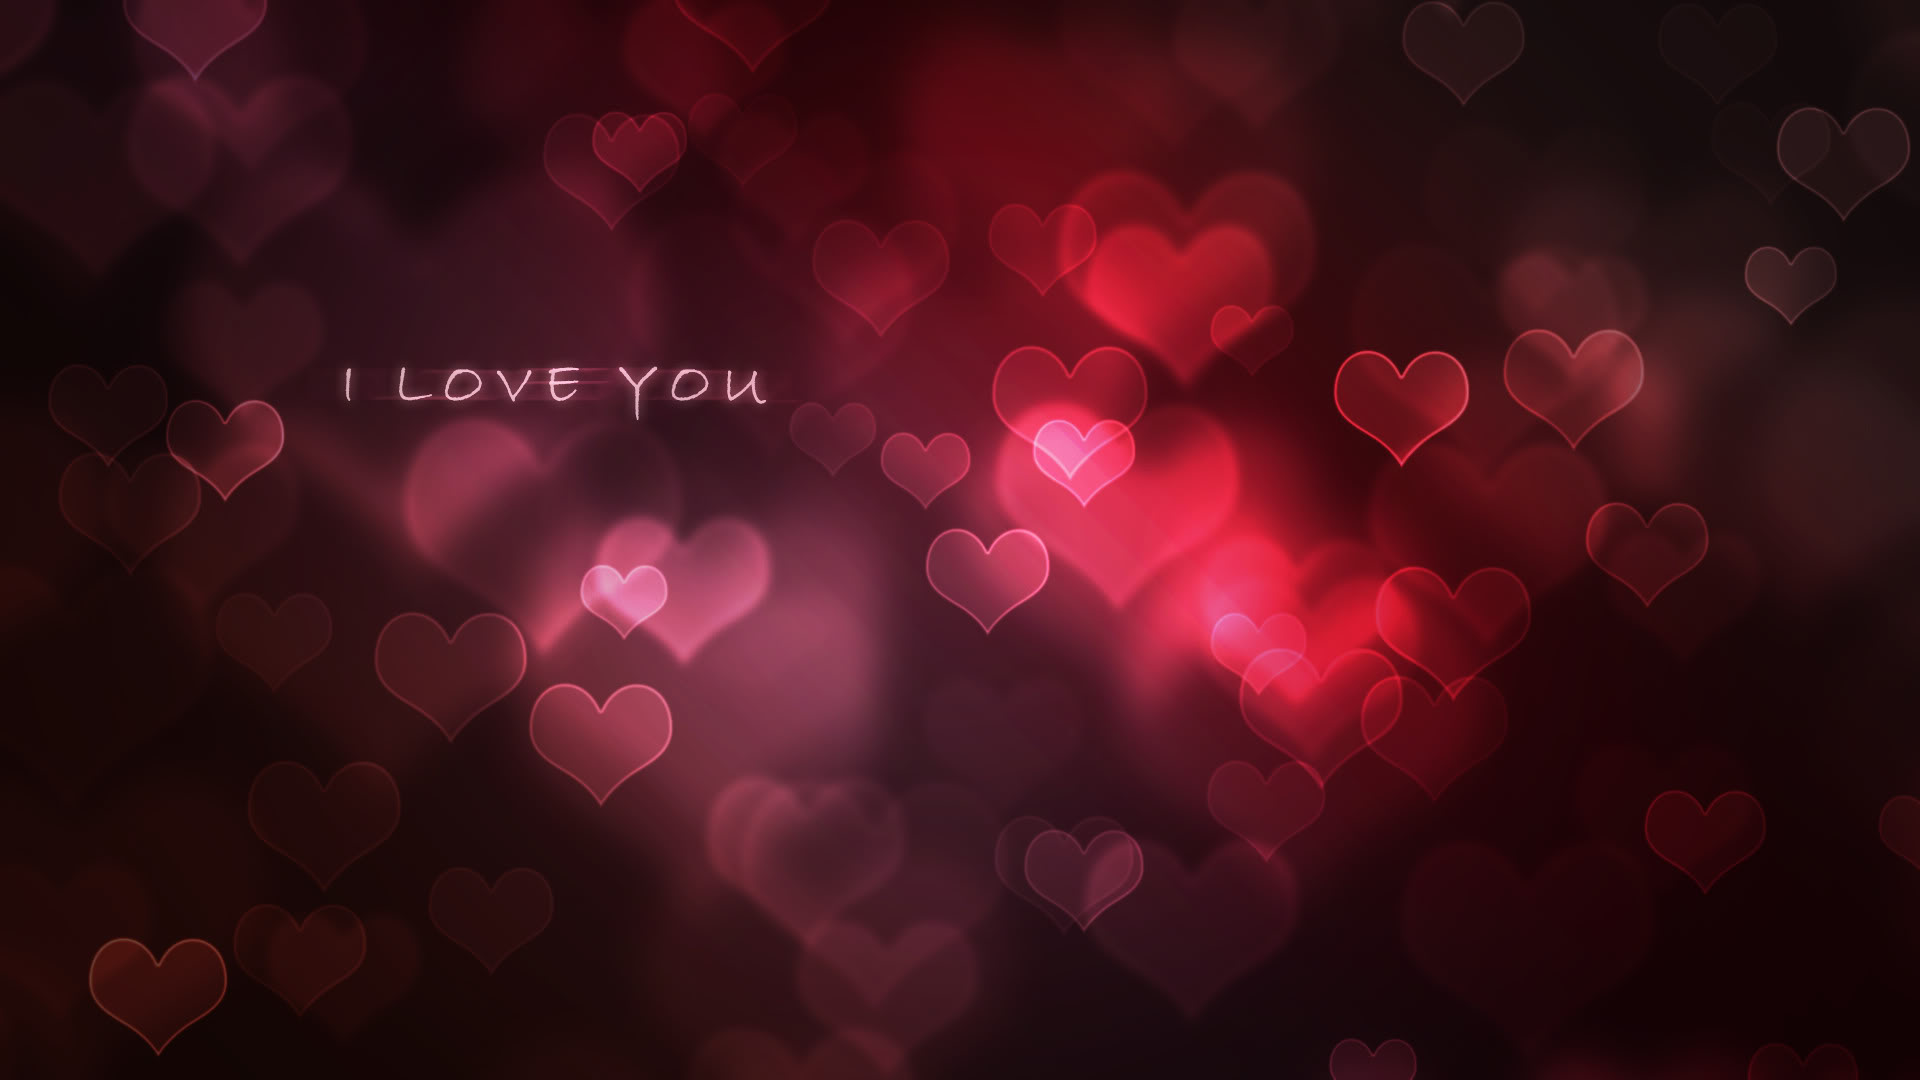 Love Wallpaper New 2014 : Awesome Love Backgrounds 18163 1920x1080 px ~ HDWallSource.com